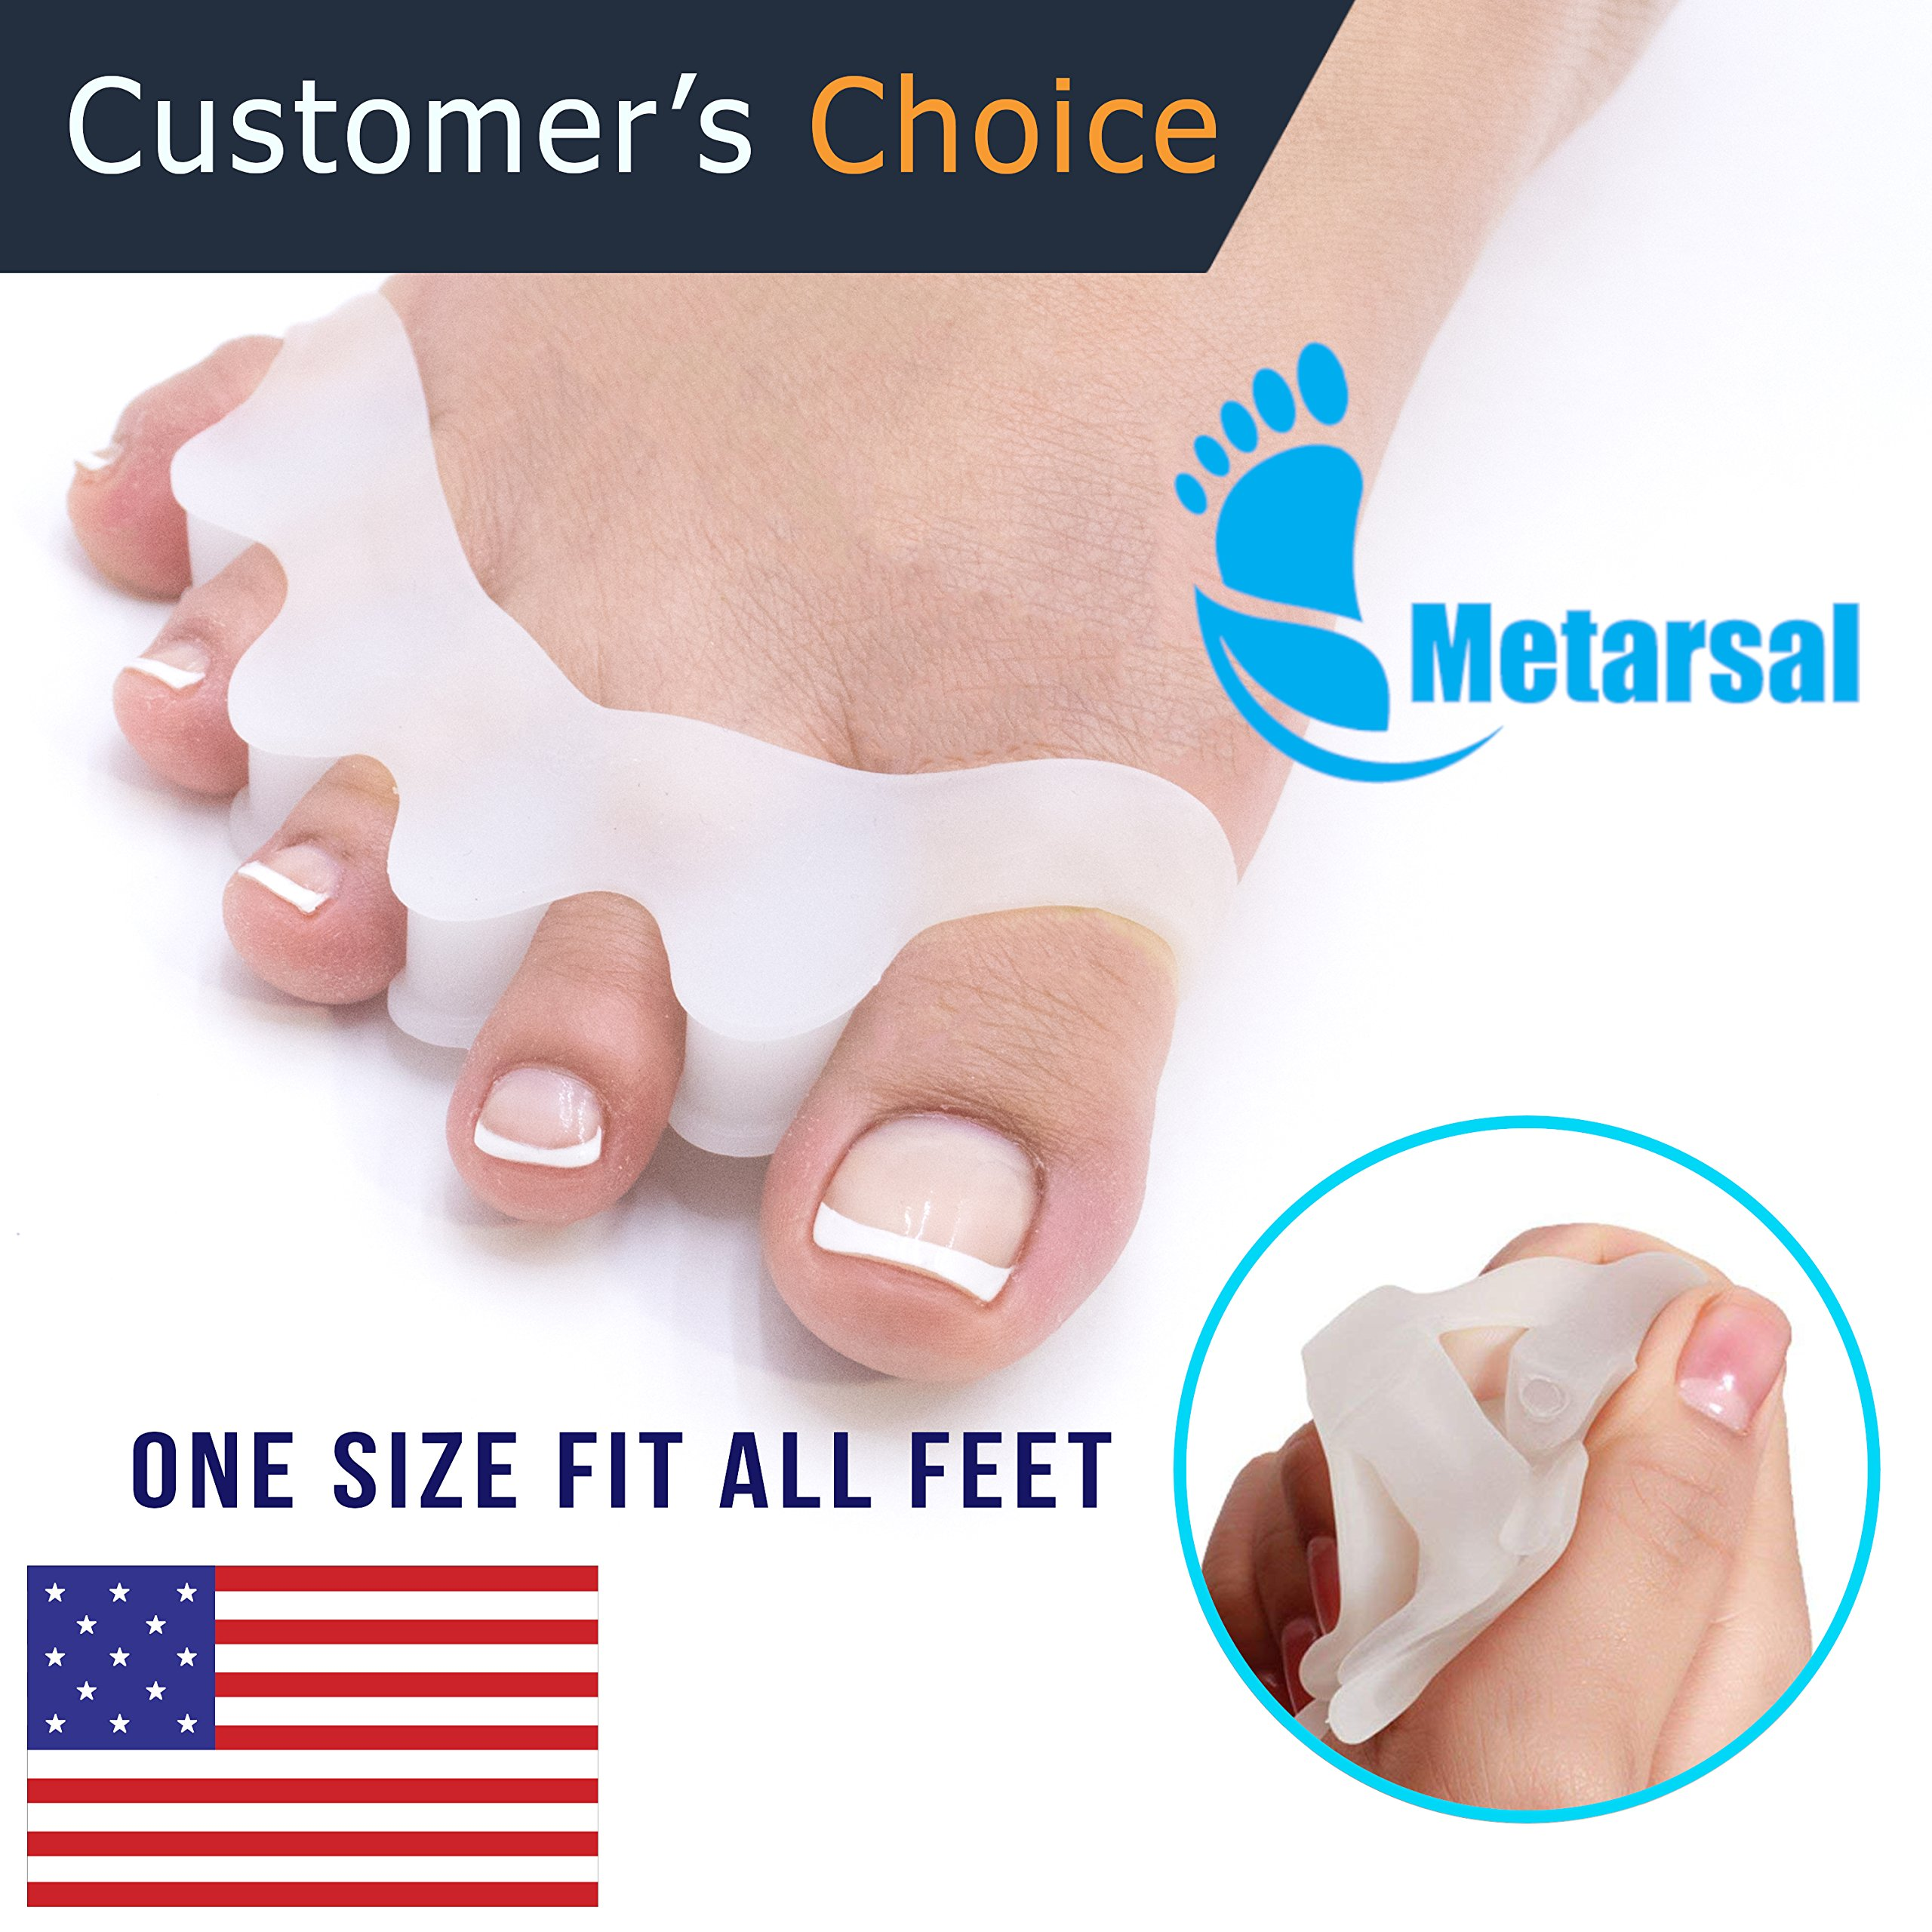 Gel Toe Separator Rubber, Toe Stretchers, Toe Spacers, Walking and Dancing, Bunion Relief, Toe Strechers for Yoga, Toe Pad Kit for Men and Women, Toe Support (2 Pcs) by Metarsal